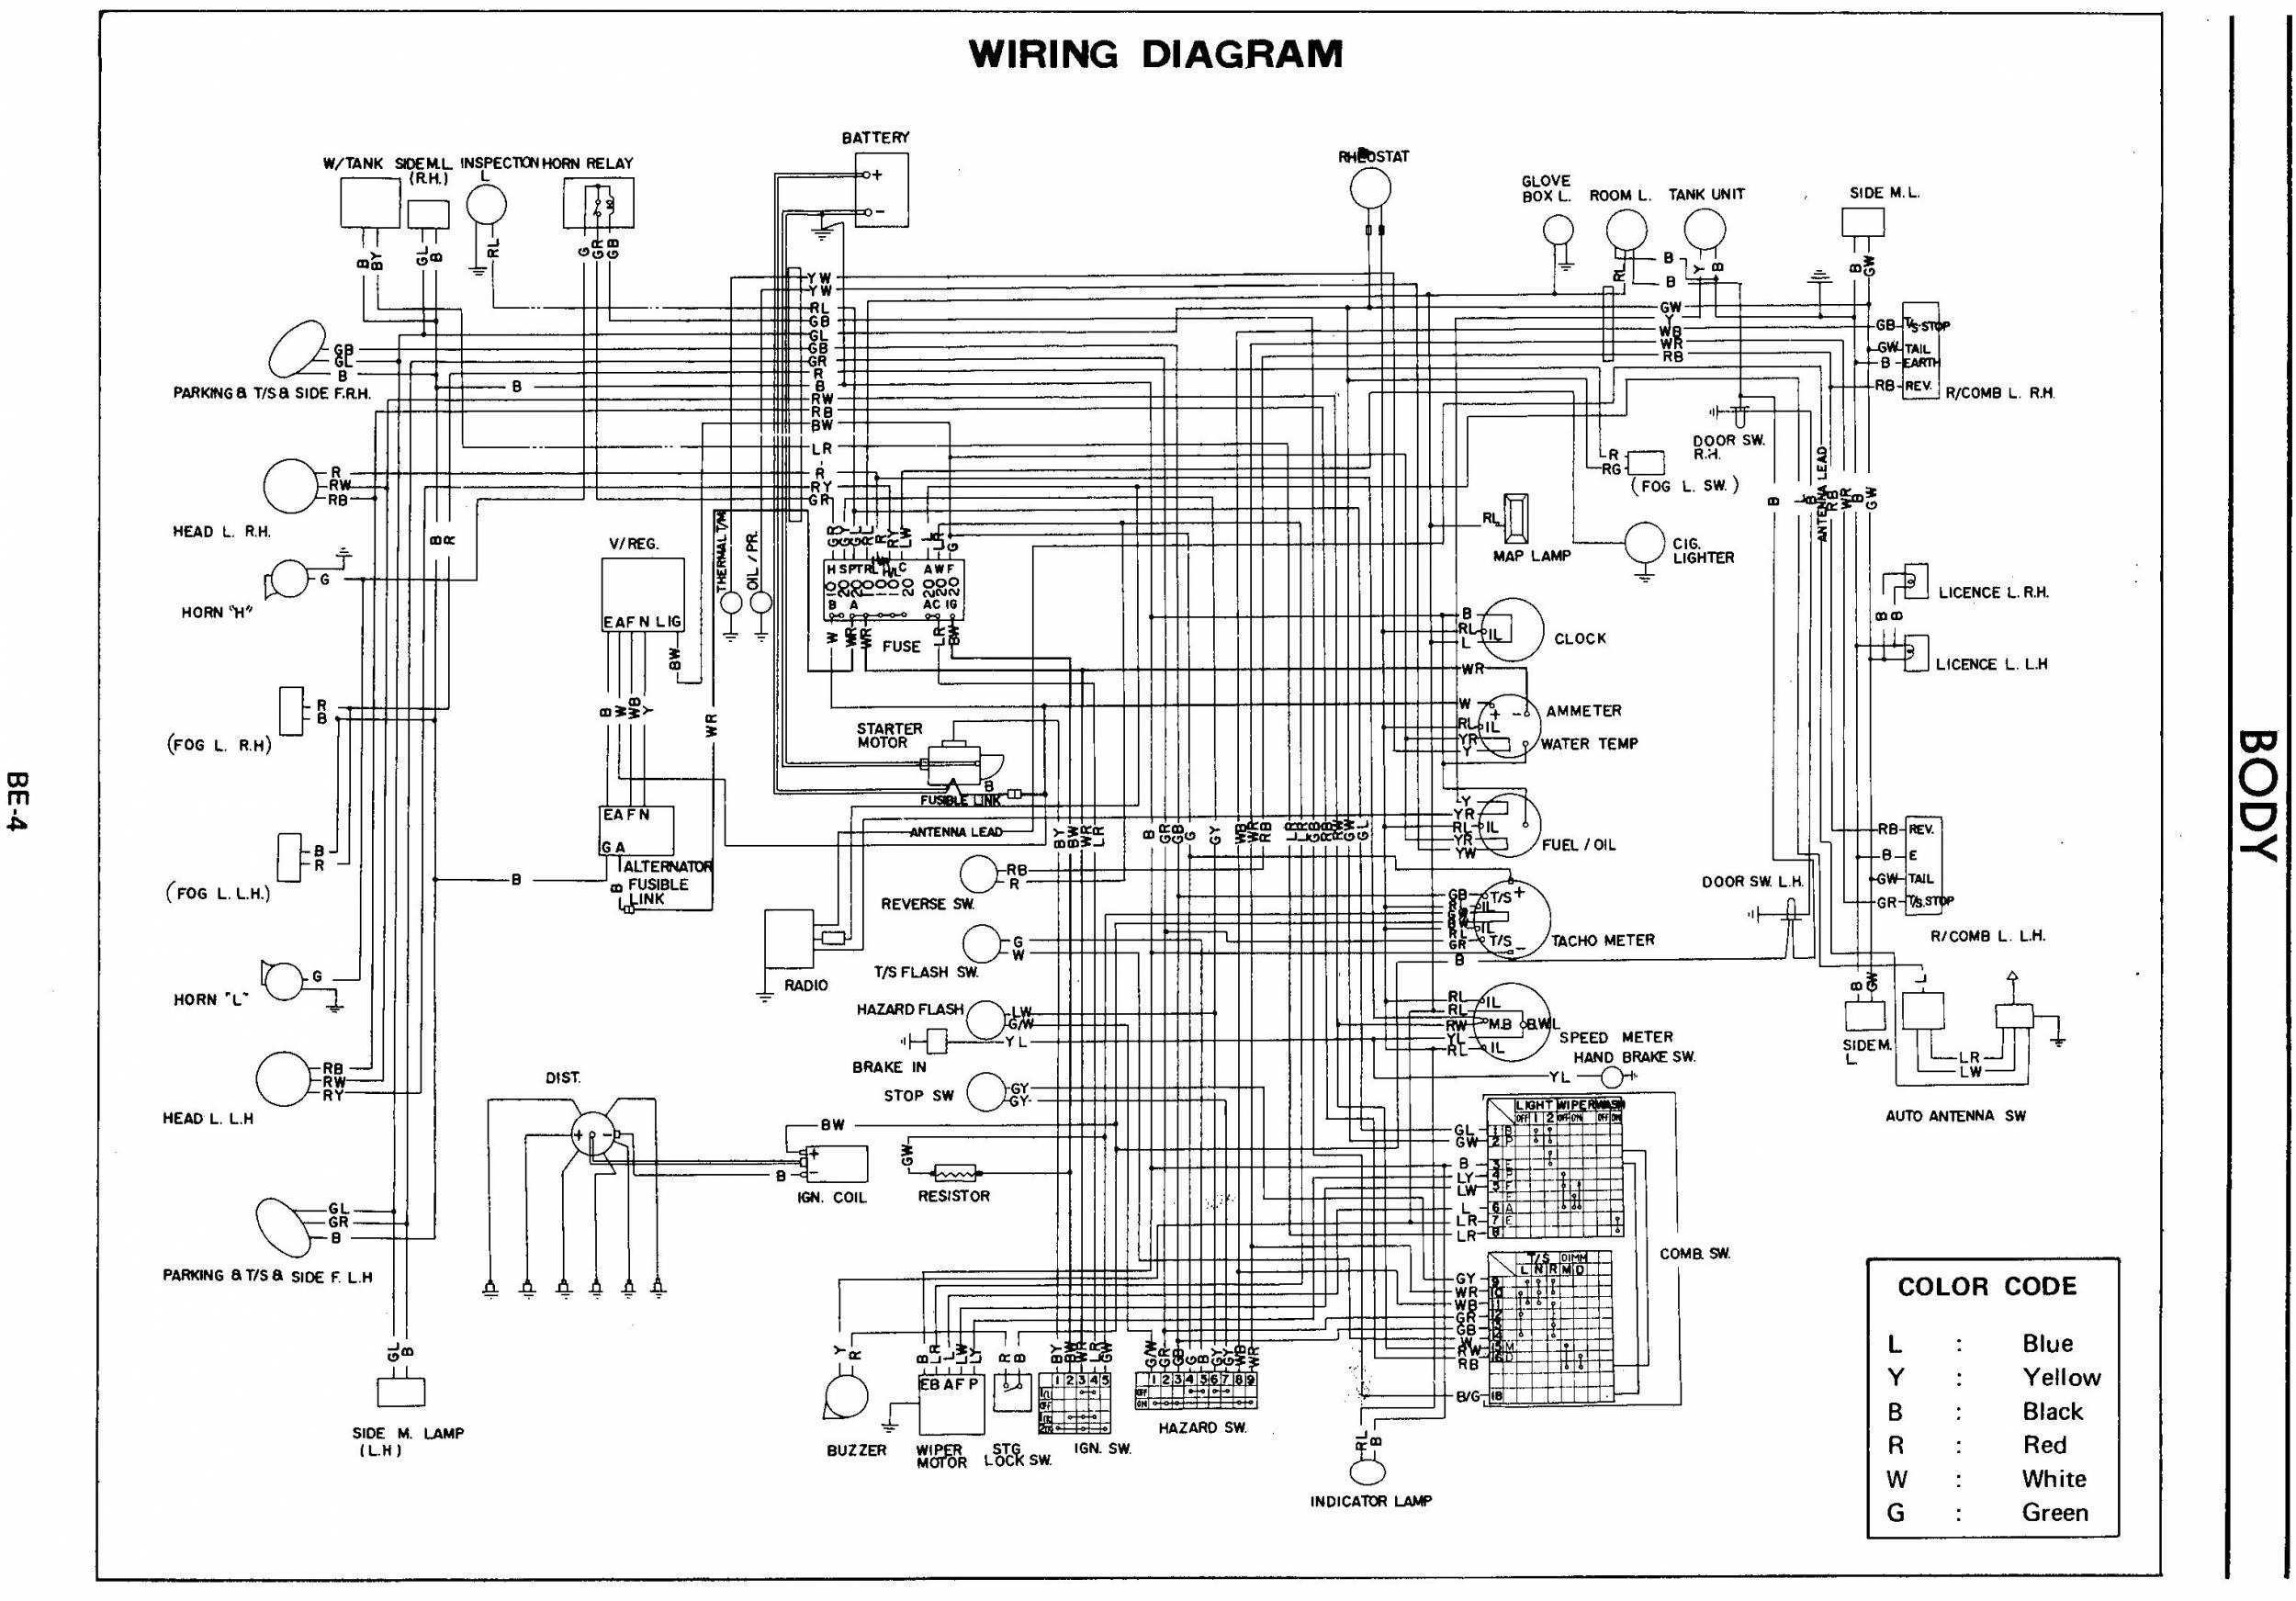 2004 mercedes c230 kompressor fuse diagram radio wiring diagram u2022 rh augmently co